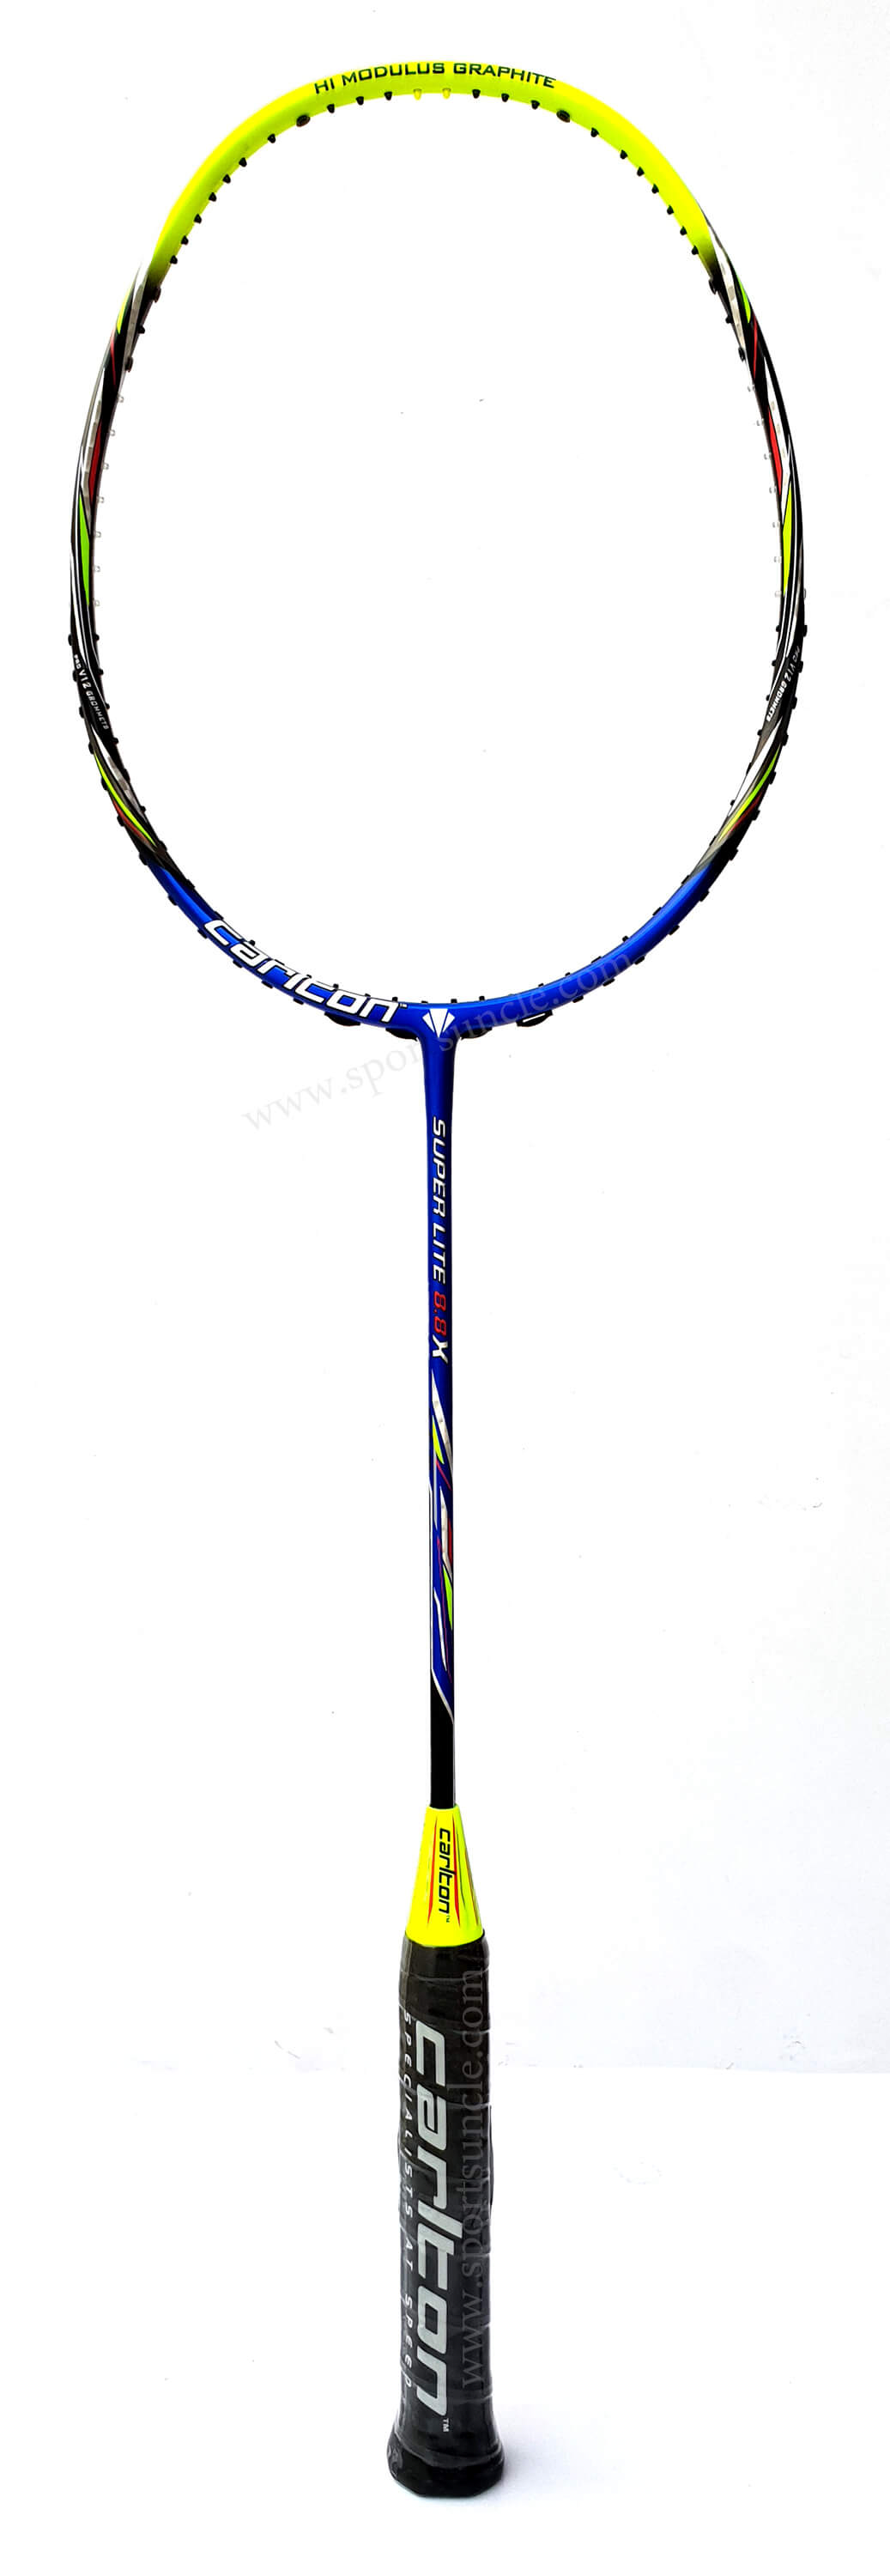 83830afc721 Carlton Superlite 8.8x Badminton Racket at Lowest Price - Sportsuncle